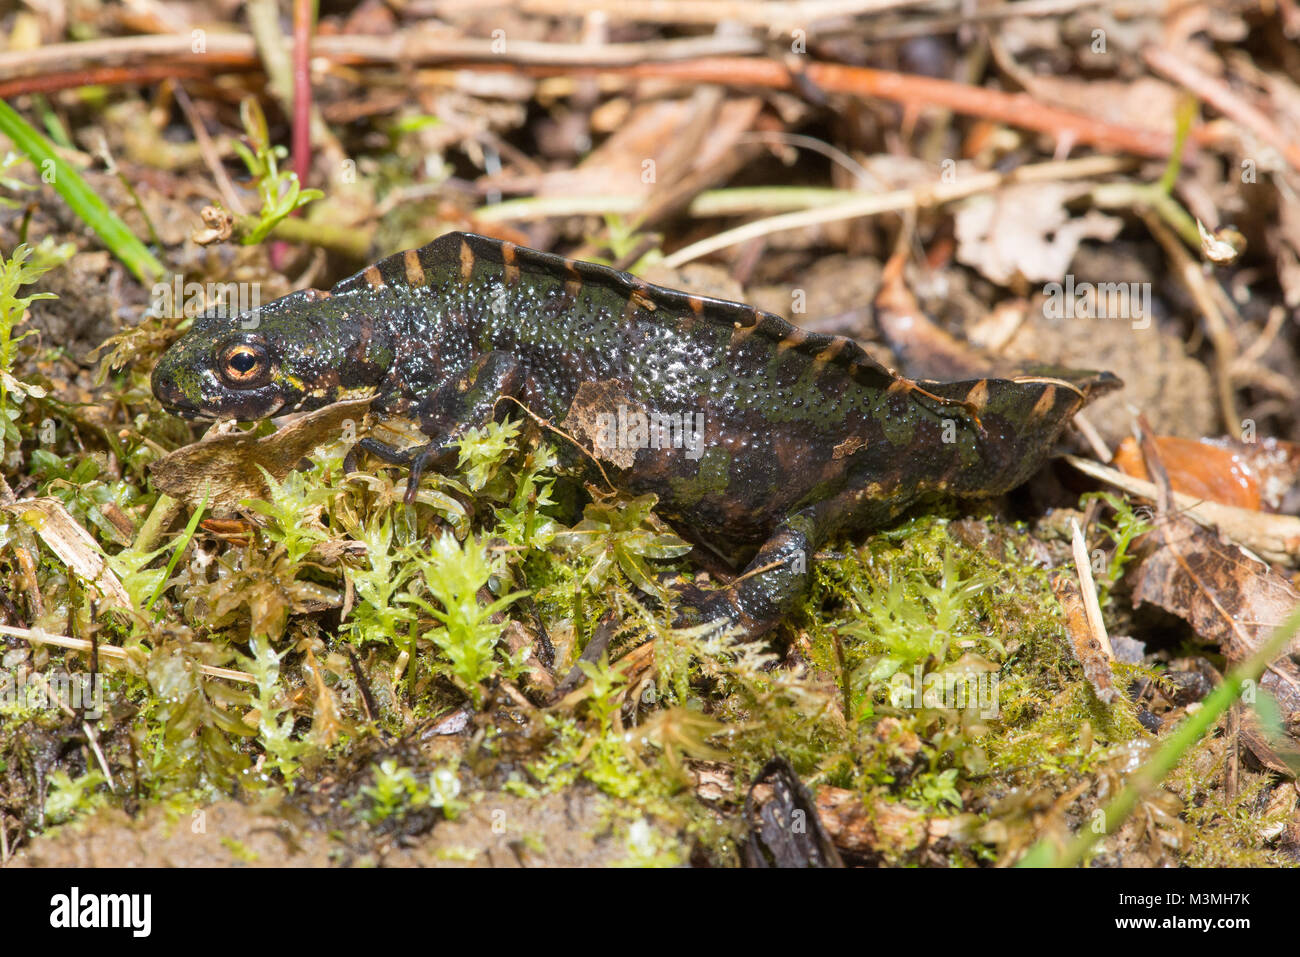 Marbled newt male  - a large, beautiful species found at higher altitudes in France & northern Spain. This from - Stock Image